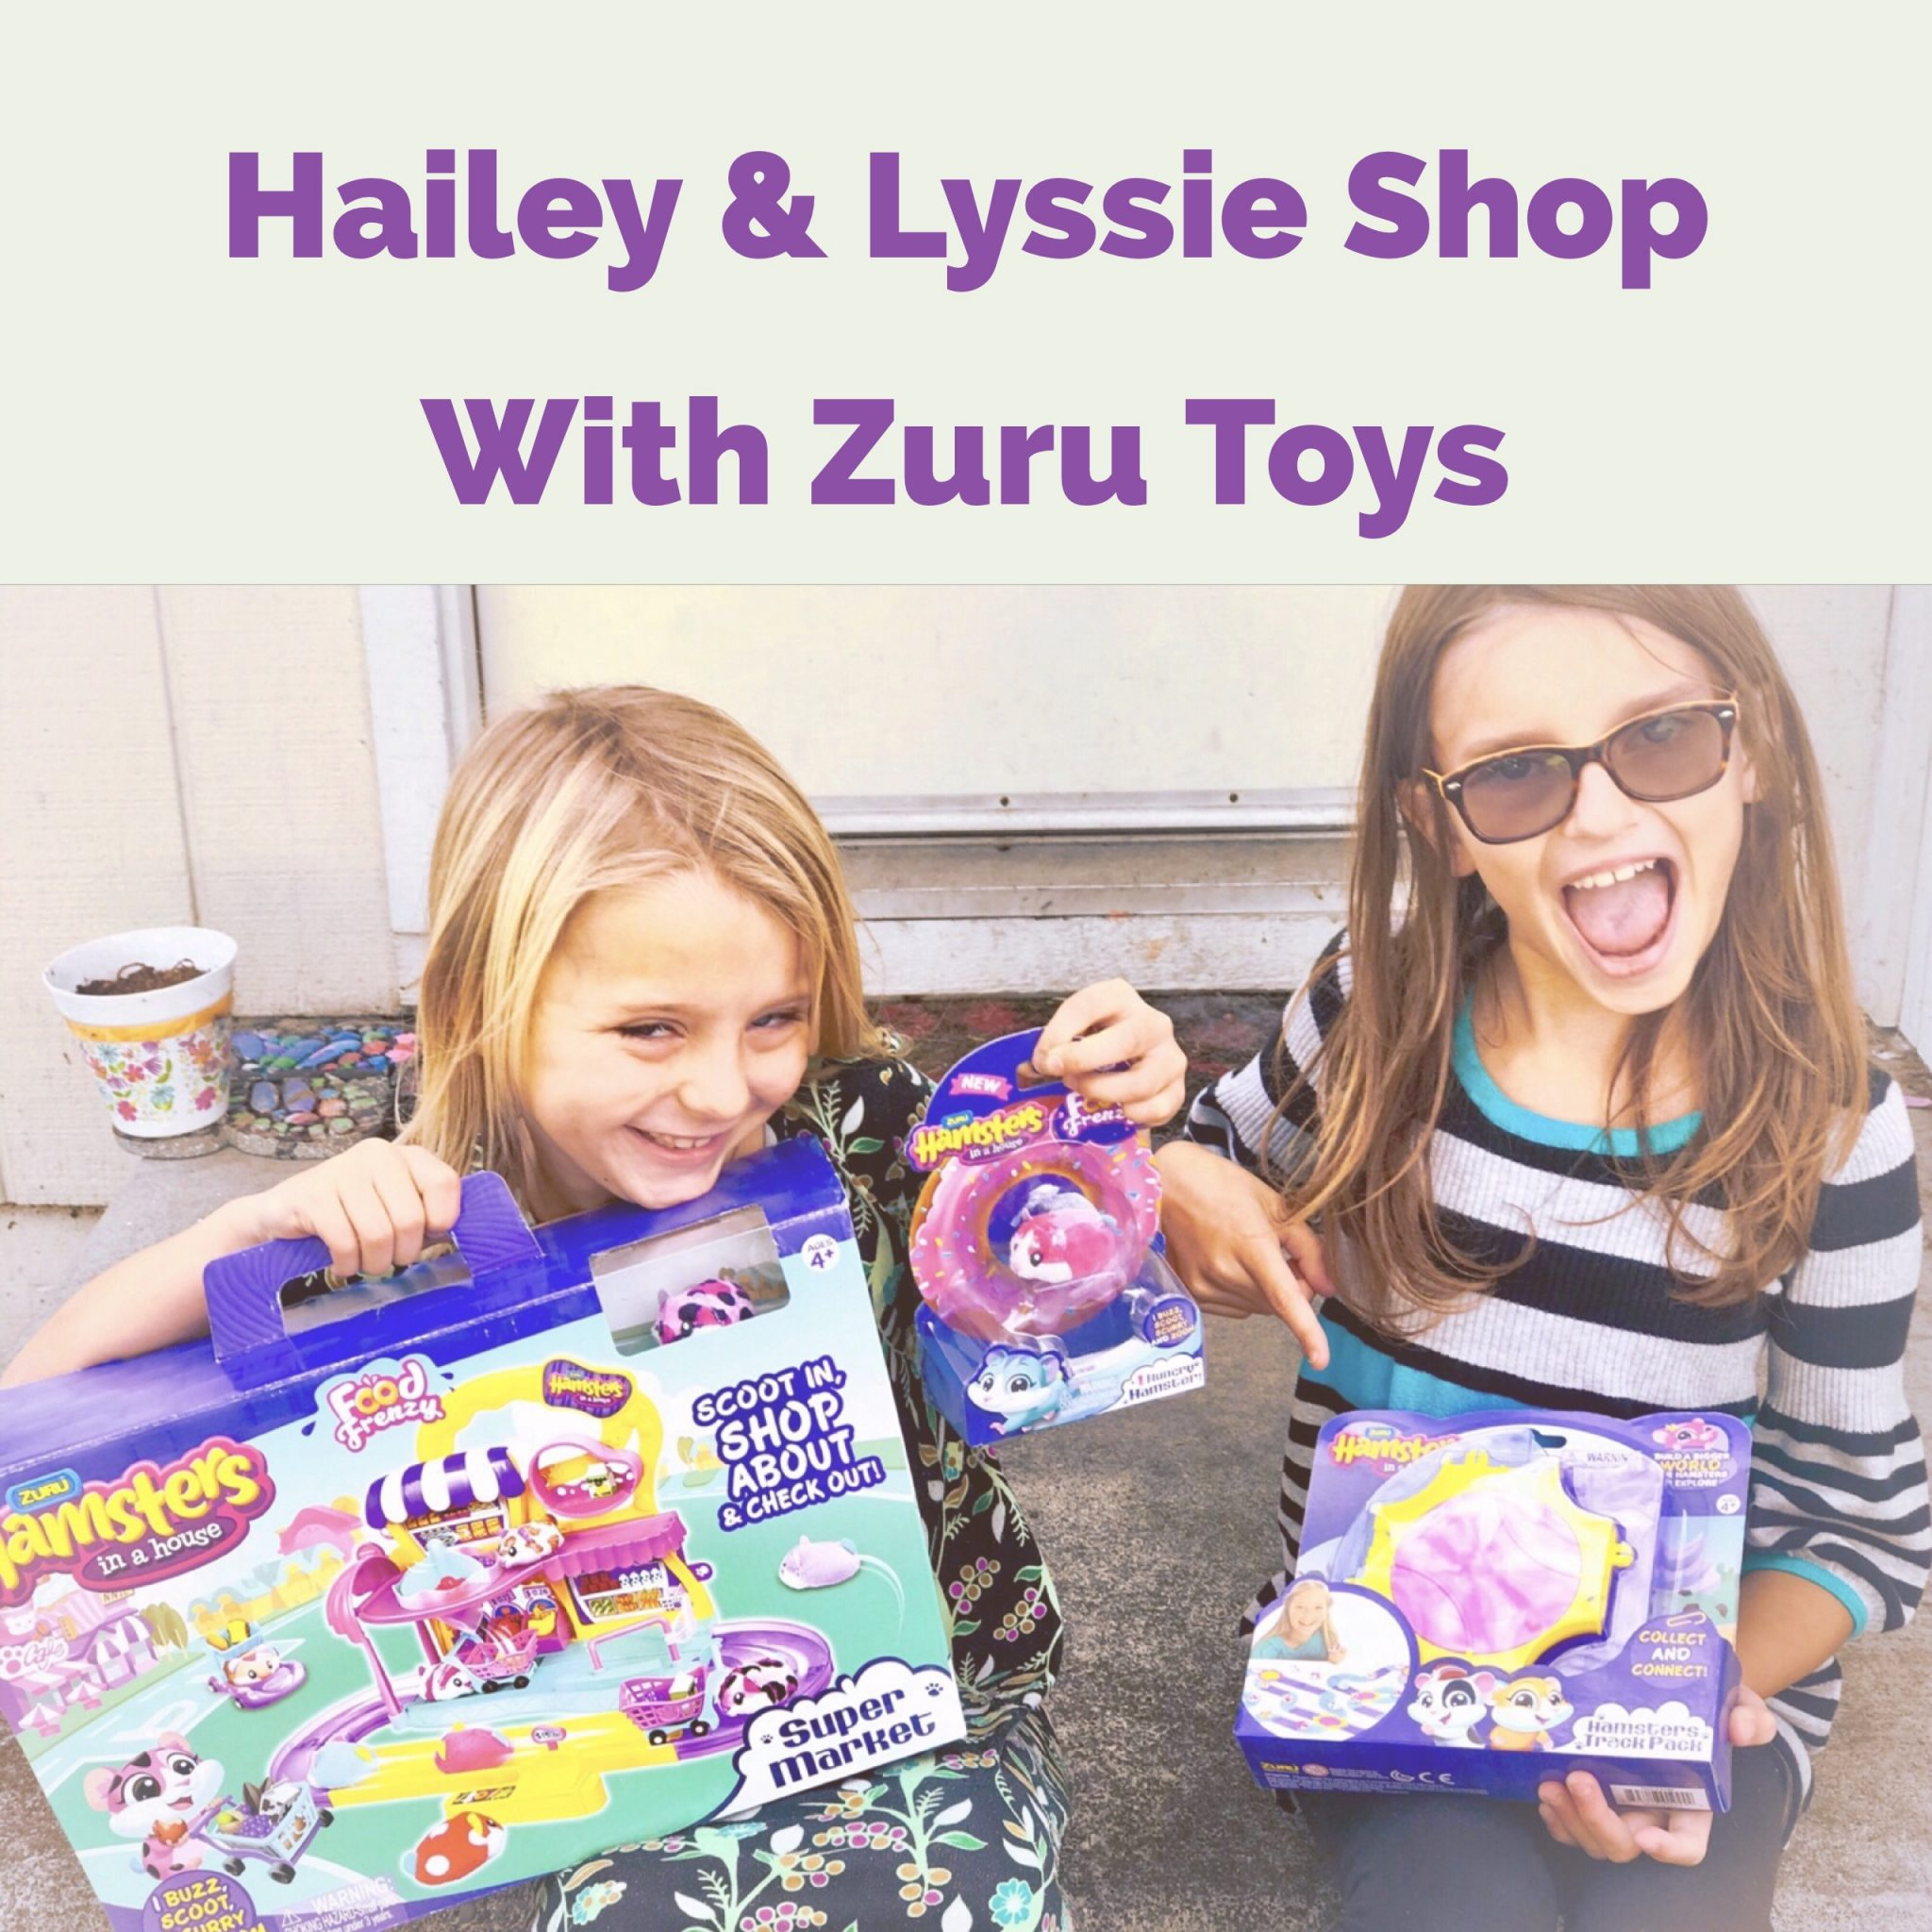 ZURU Holiday gift guide products